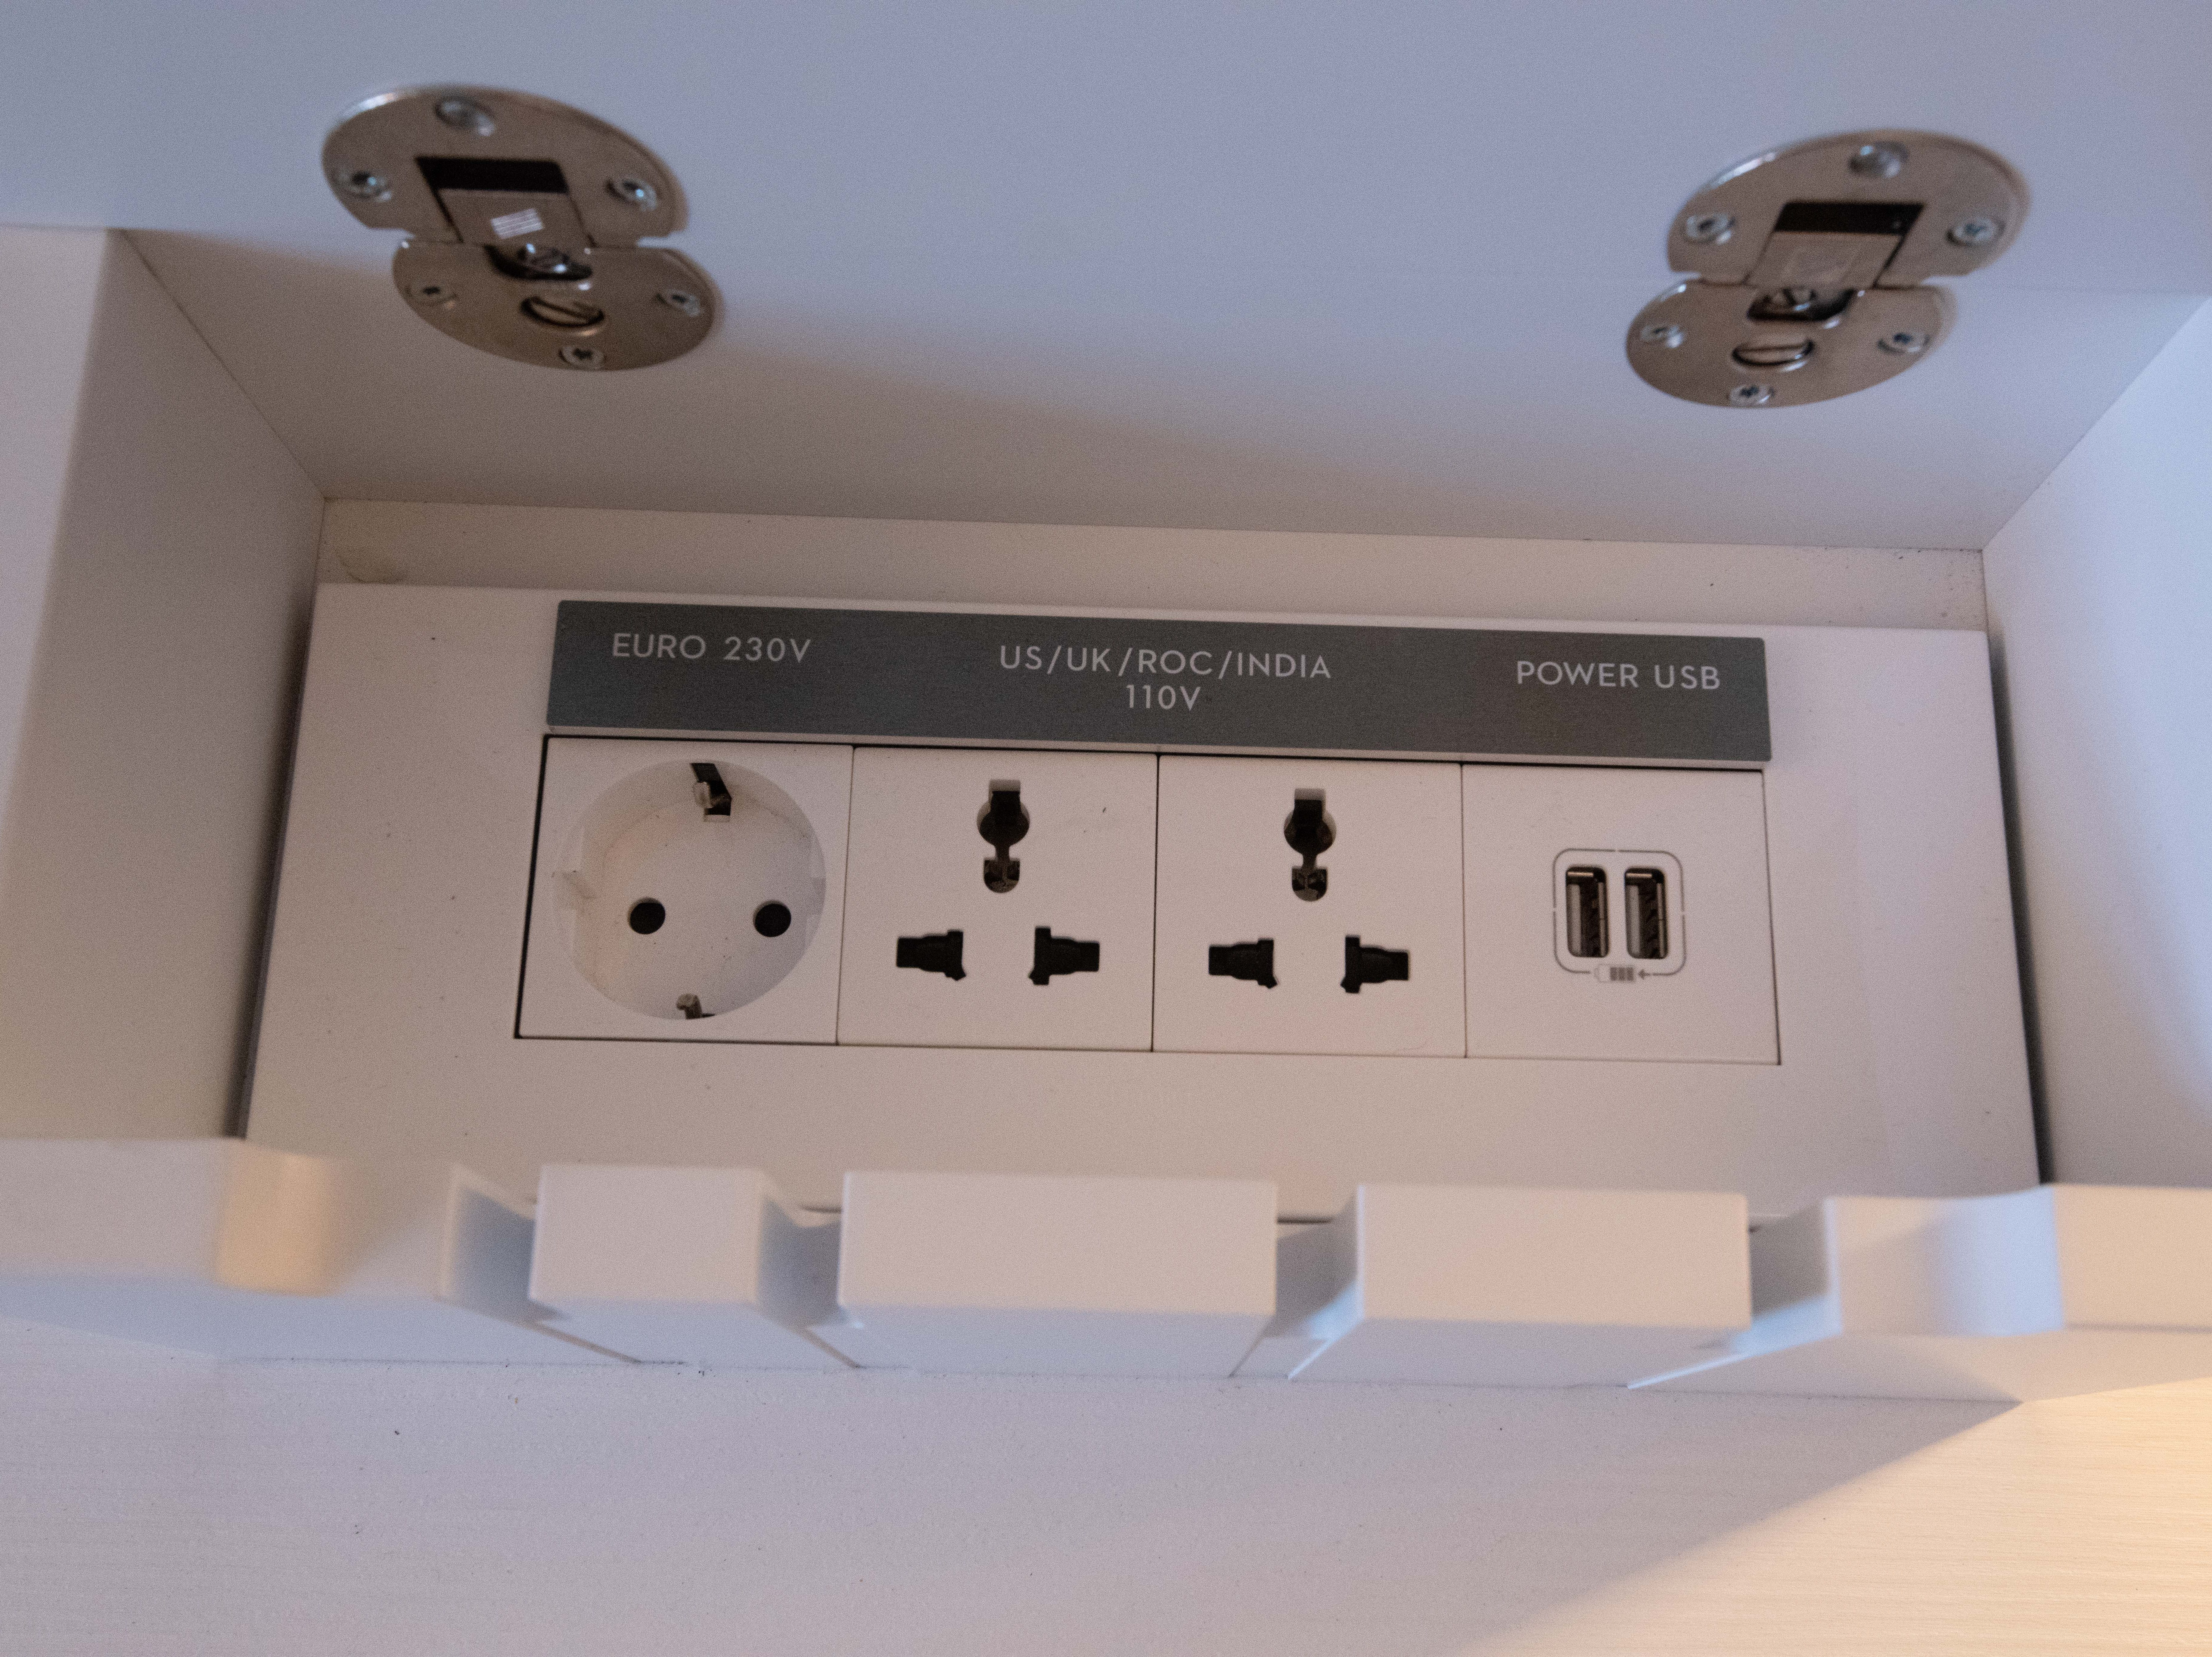 The built-in box with that hides away electrical outlets features both U.S.- and European-style outlets.